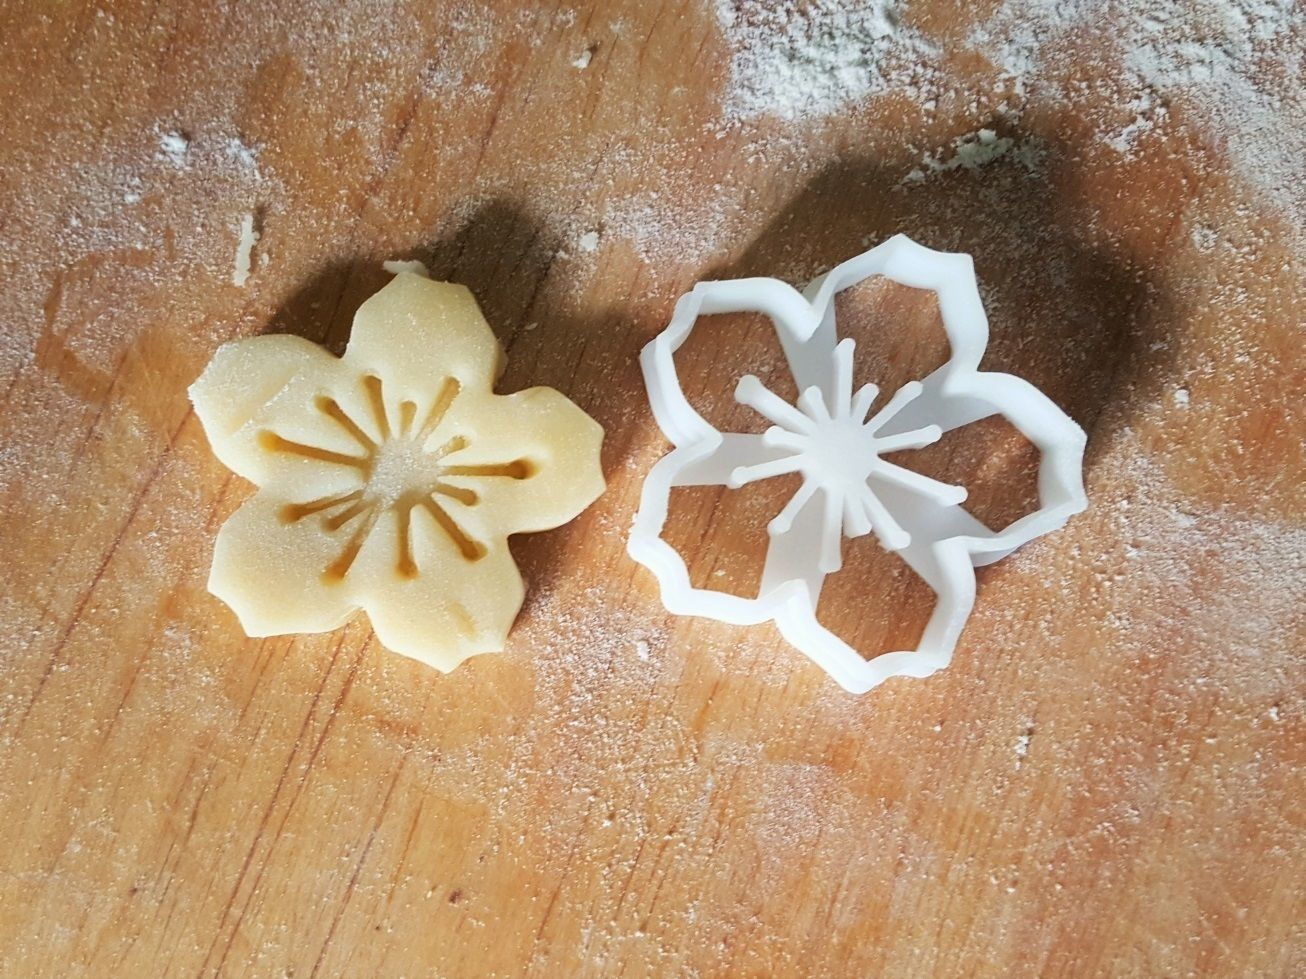 Cherry Blossom cookie cutter